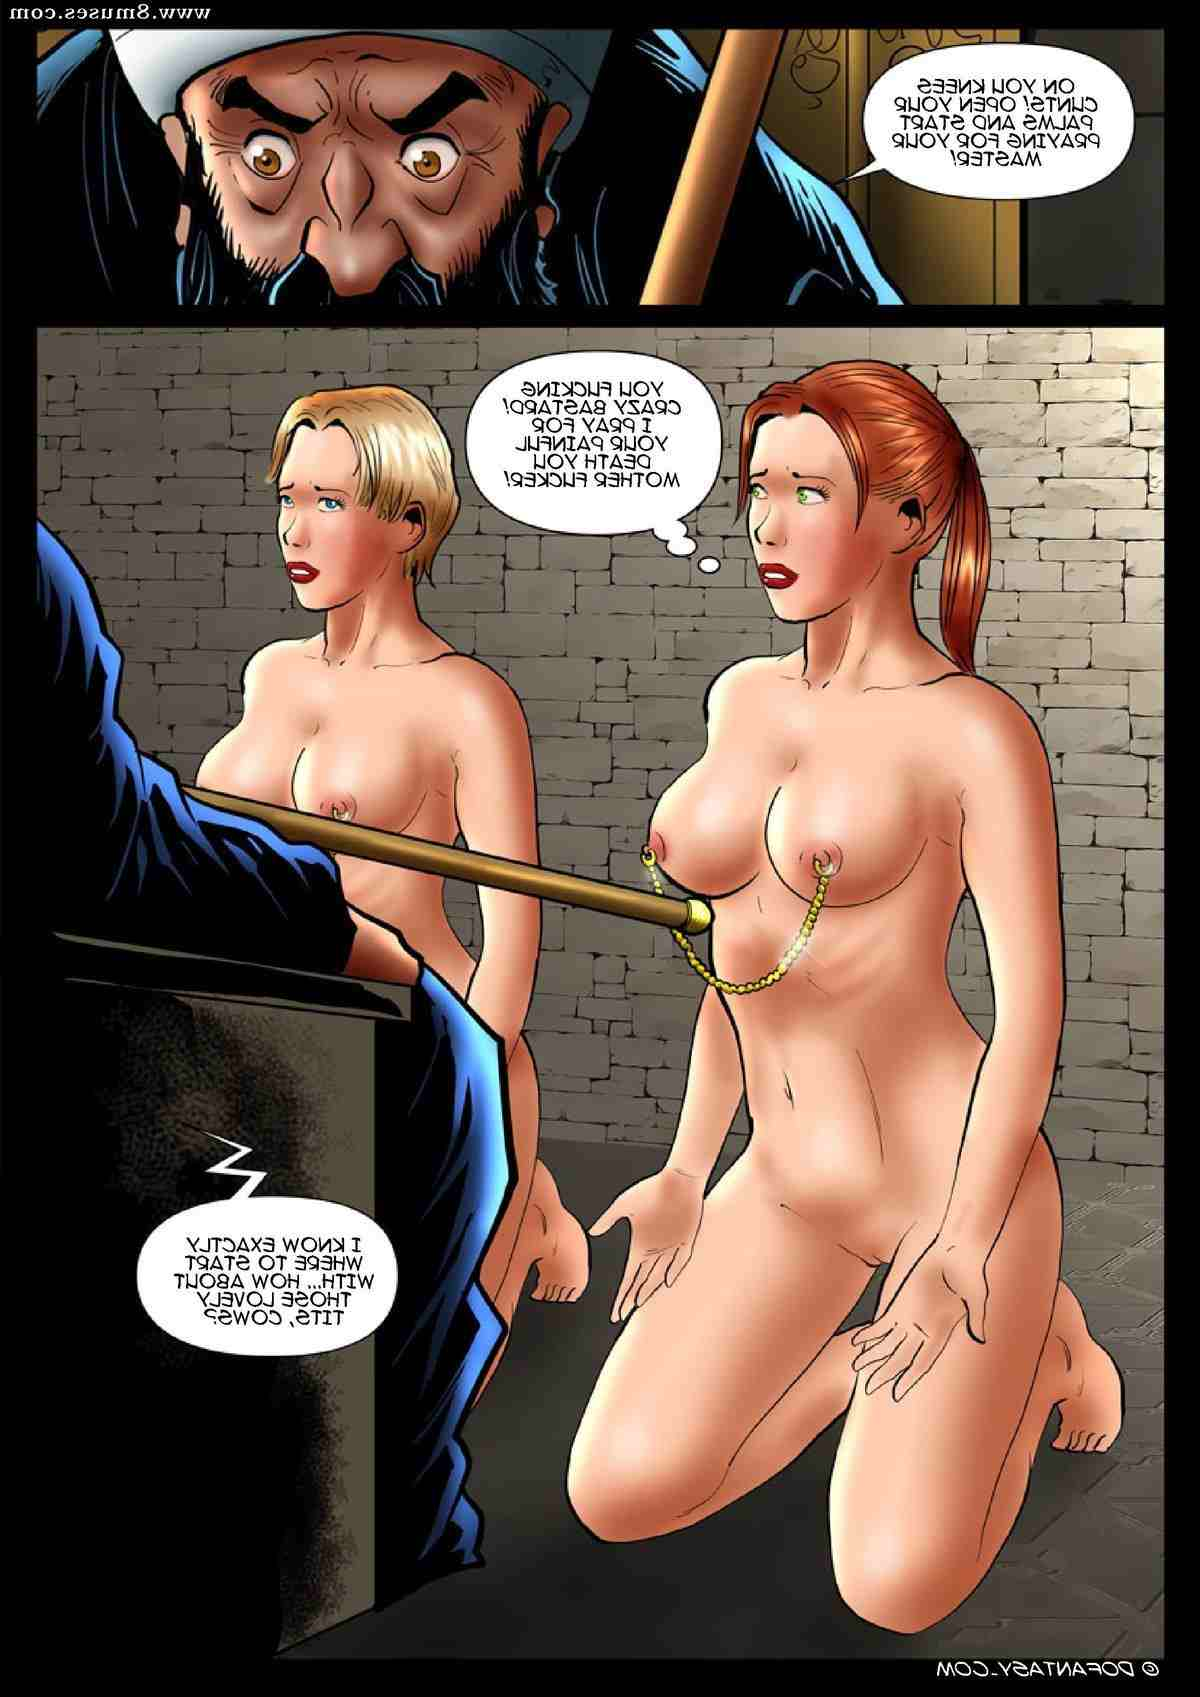 Fansadox-Comics/301-400/Fansadox-369-The-Pows Fansadox_369_-_The_Pows__8muses_-_Sex_and_Porn_Comics_37.jpg